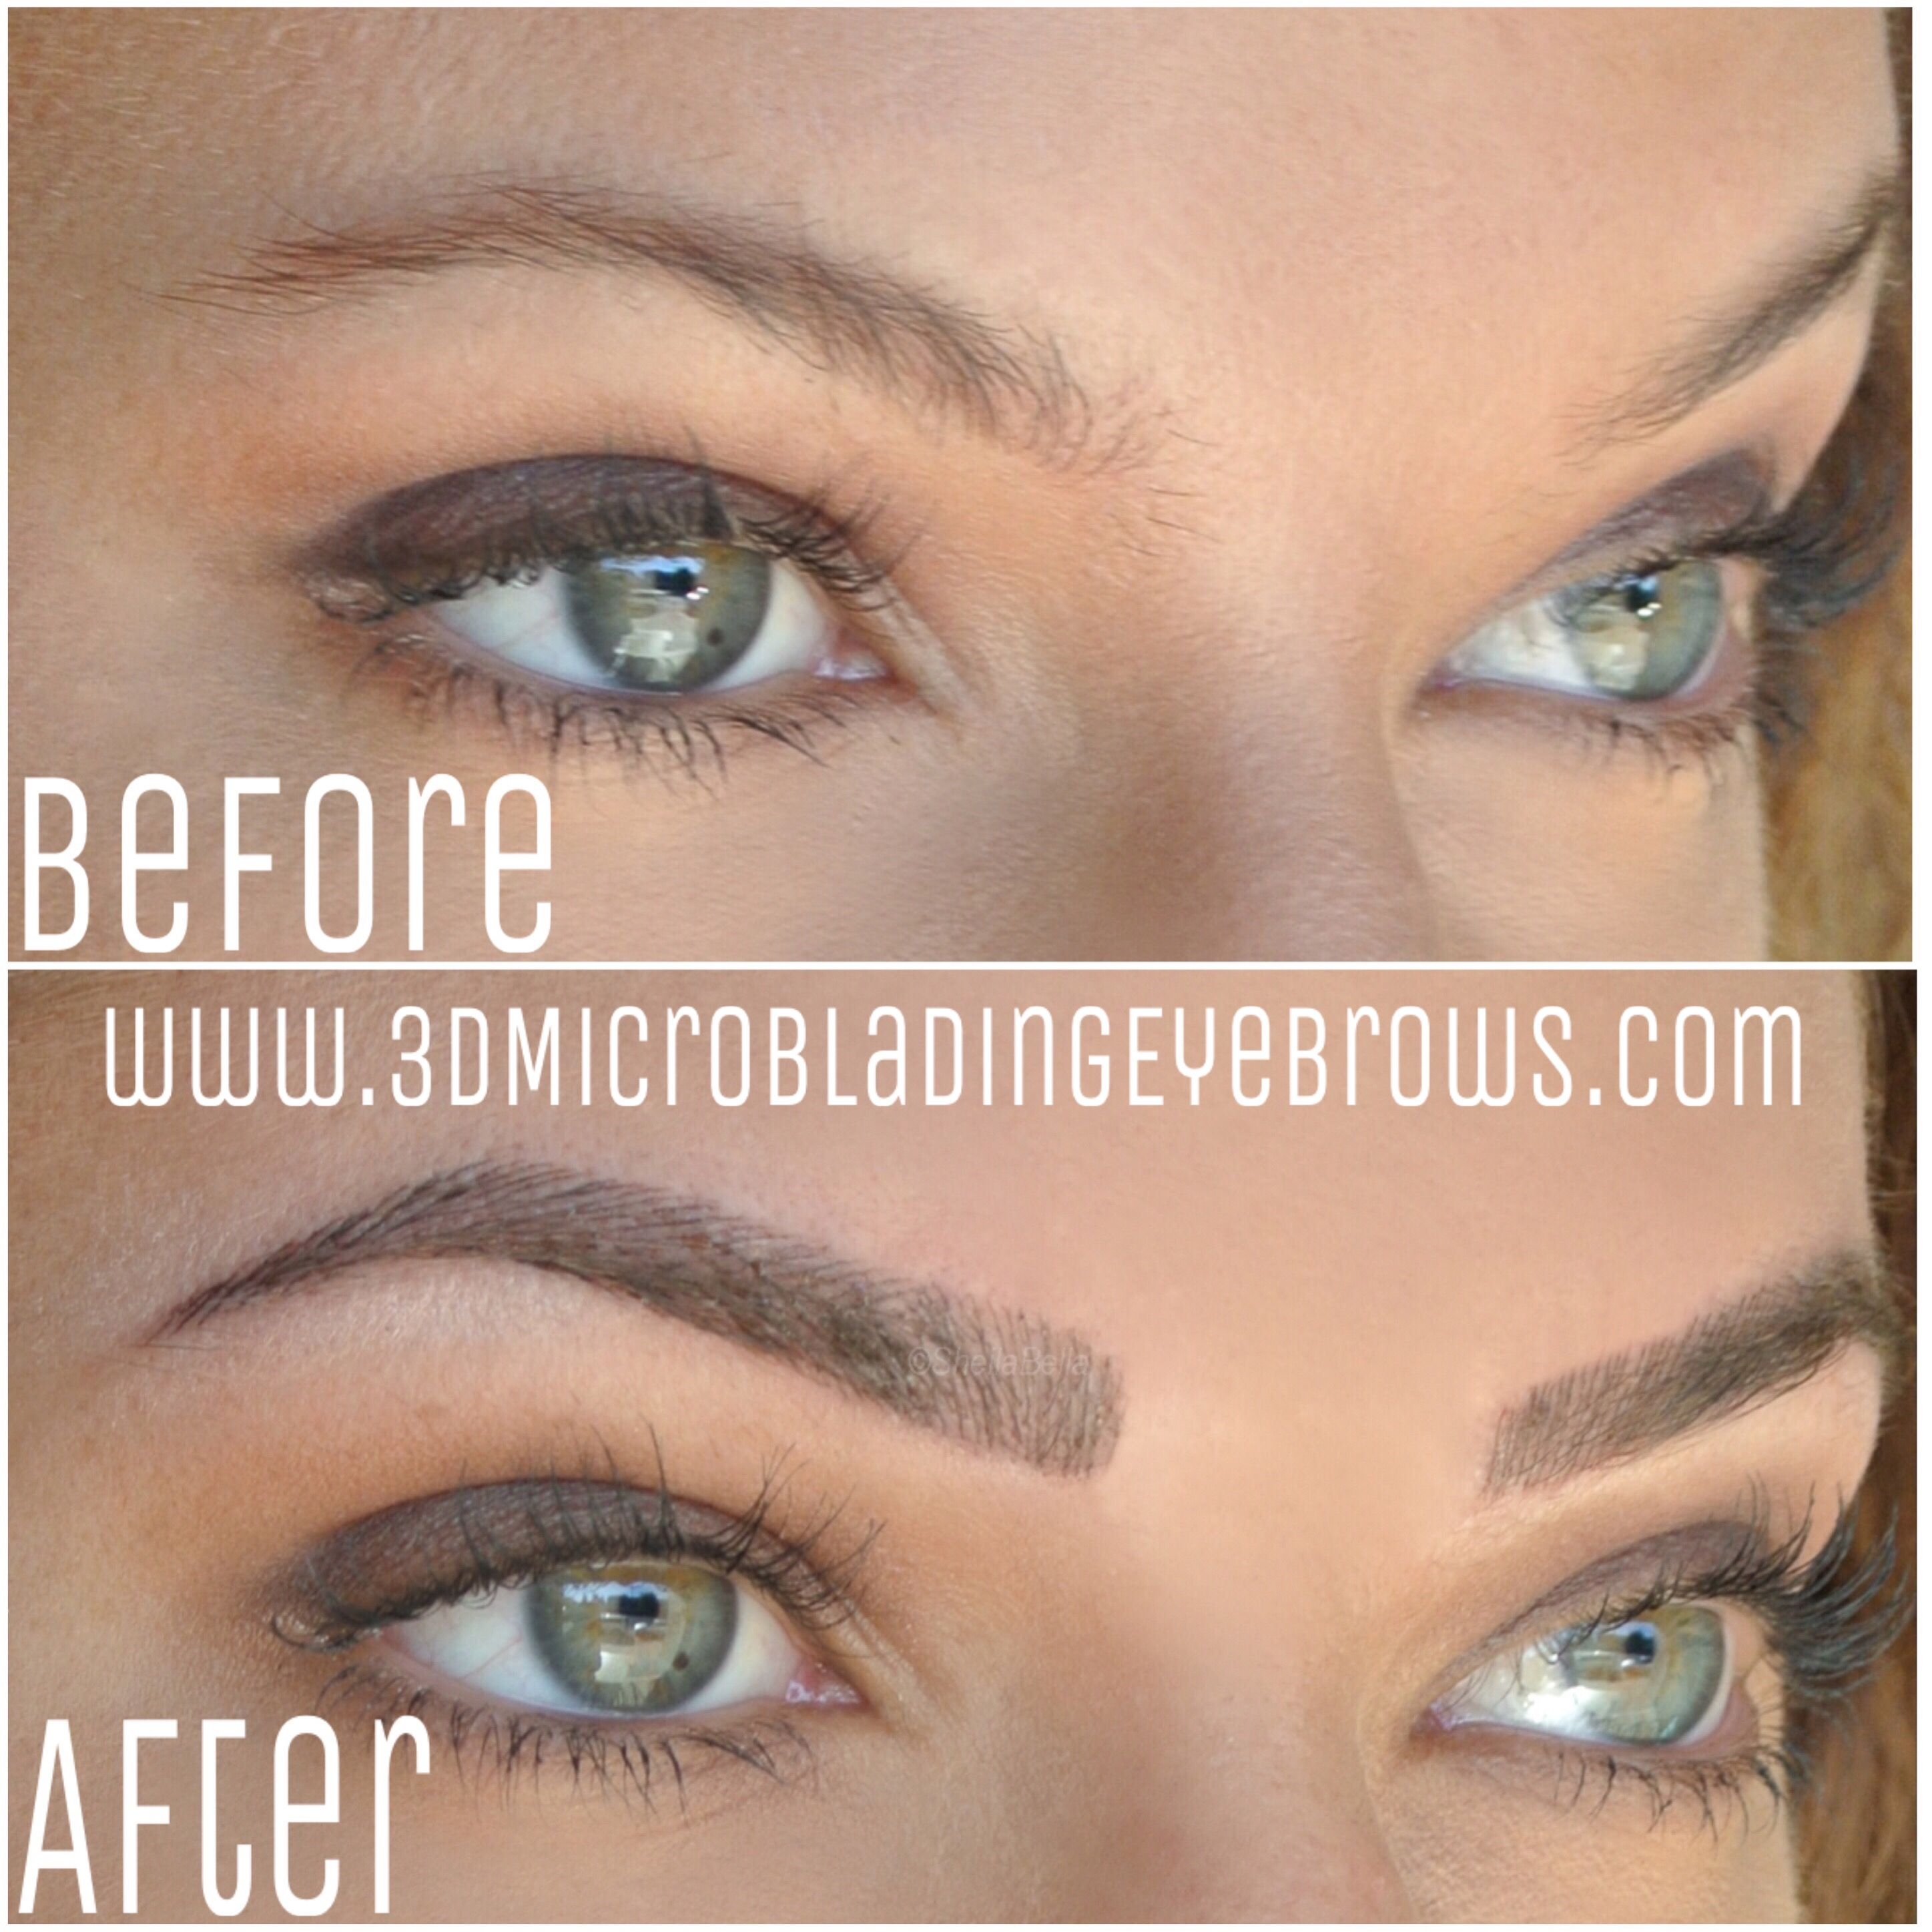 What Is Eyebrow Microblading What Is Eyebrow Microblading new foto